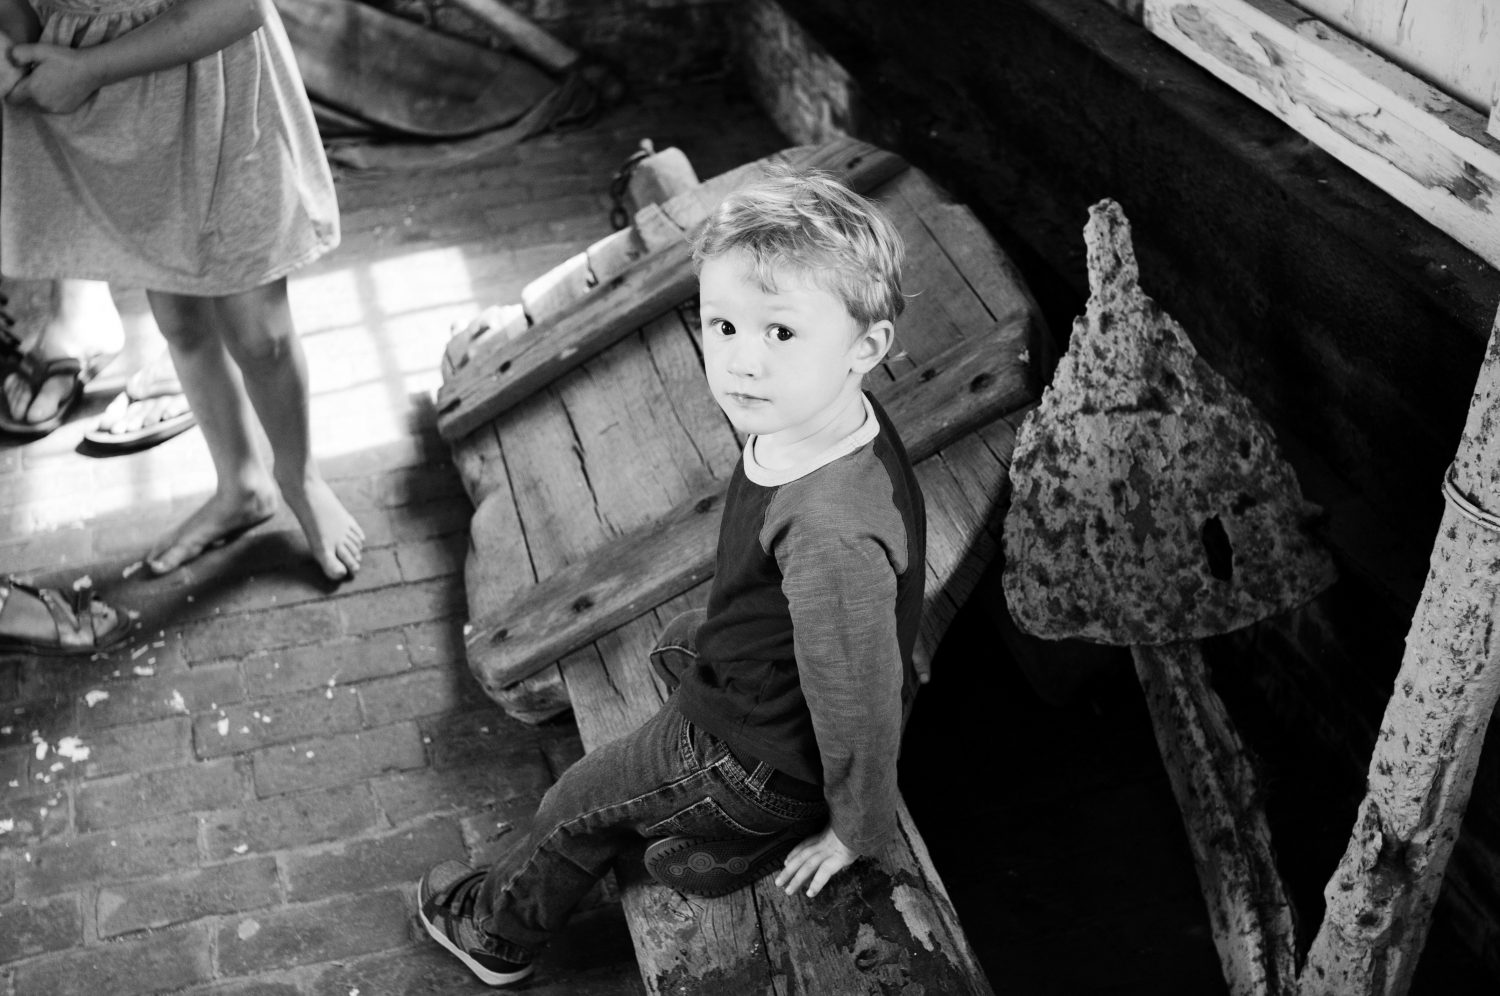 black and white image of young boy